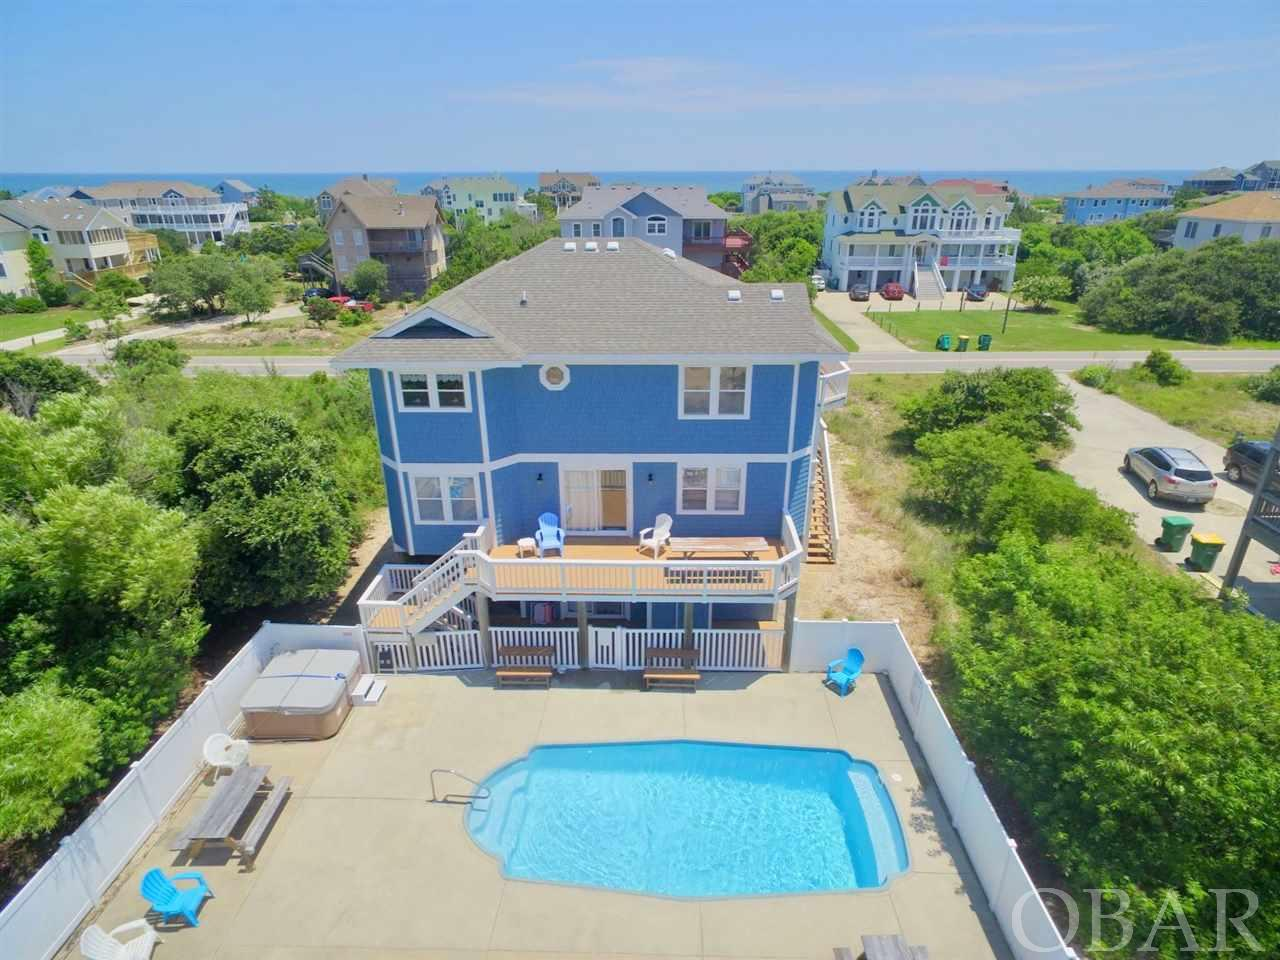 962 Whalehead Drive,Corolla,NC 27927,7 Bedrooms Bedrooms,4 BathroomsBathrooms,Residential,Whalehead Drive,101000